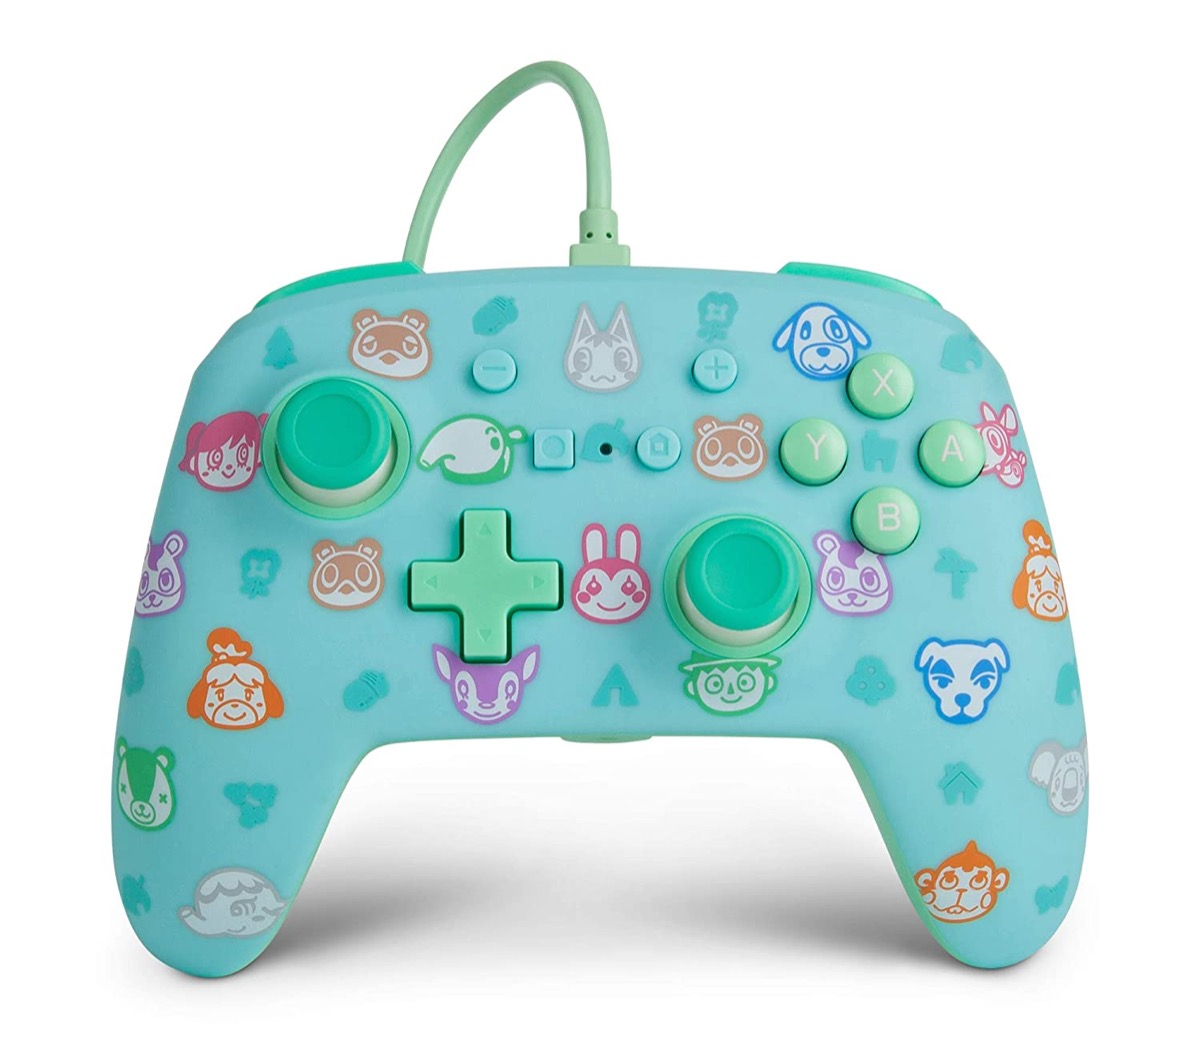 nintendo switch controller in blue